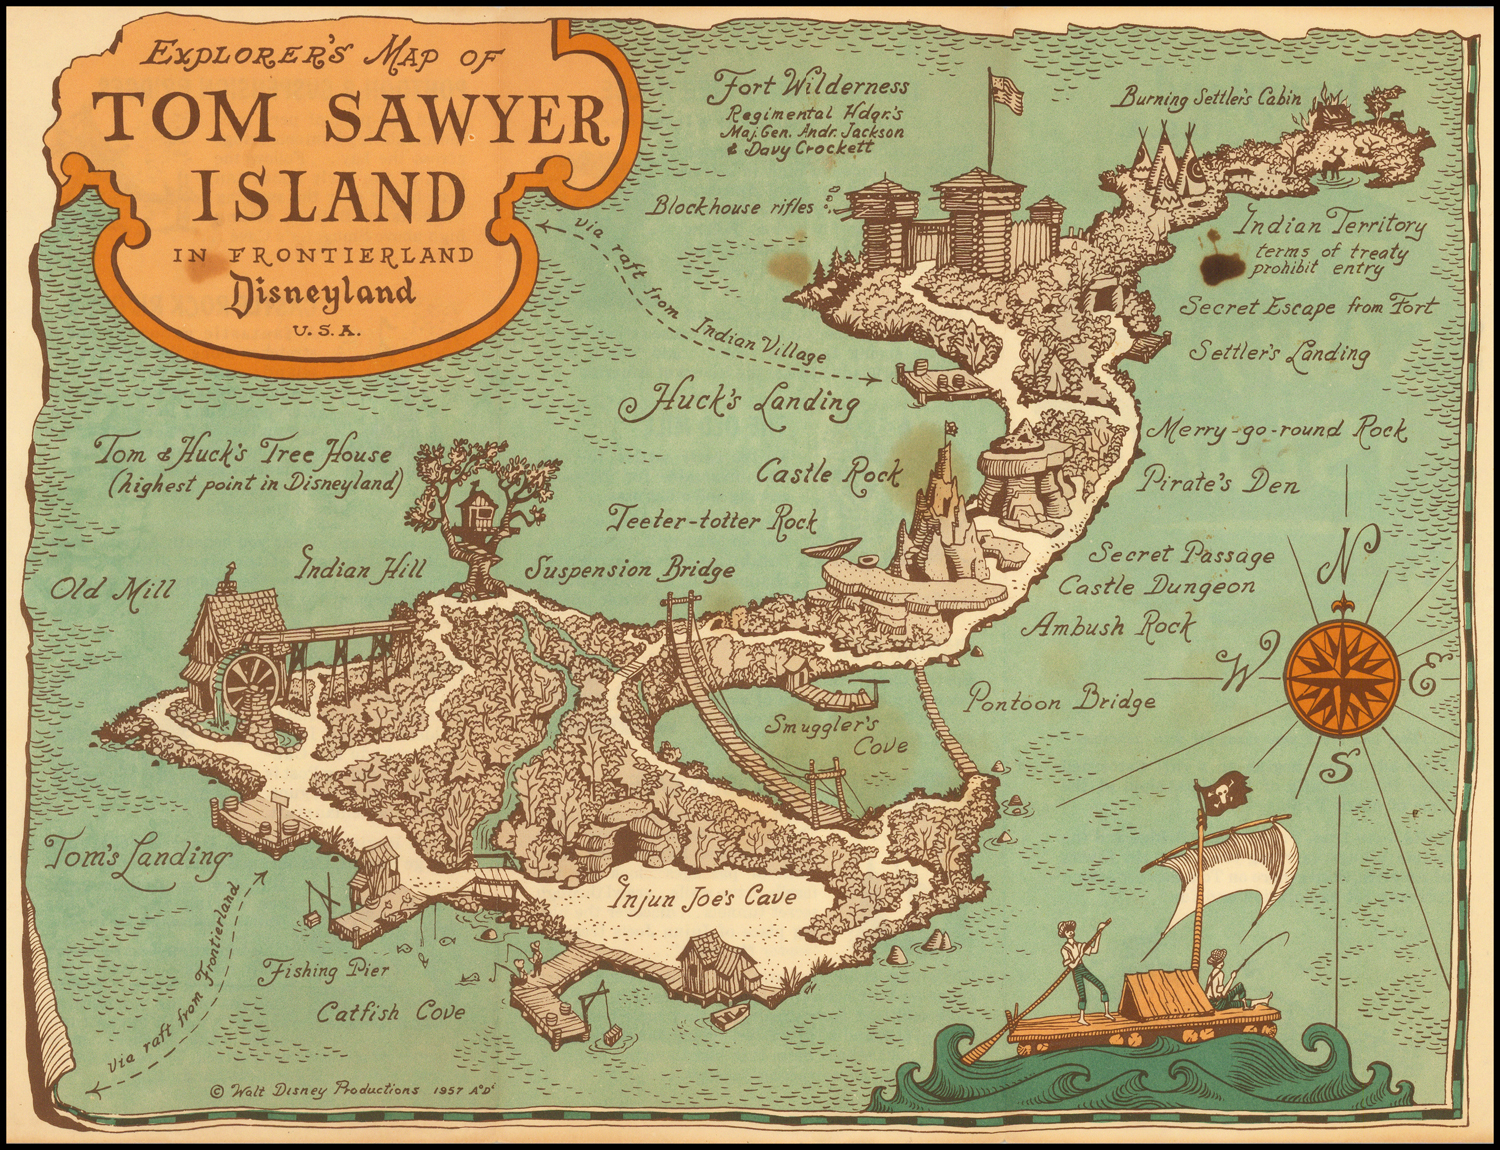 Explorer's Map of Tom Sawyer Island in Frontierland ... on map of bowbells north dakota, map of minot north dakota, map of wahpeton north dakota, map of richardton north dakota, map of bottineau north dakota, map of tioga north dakota, map of hazen north dakota, map of mandaree north dakota, map of underwood north dakota, map of lehr north dakota,